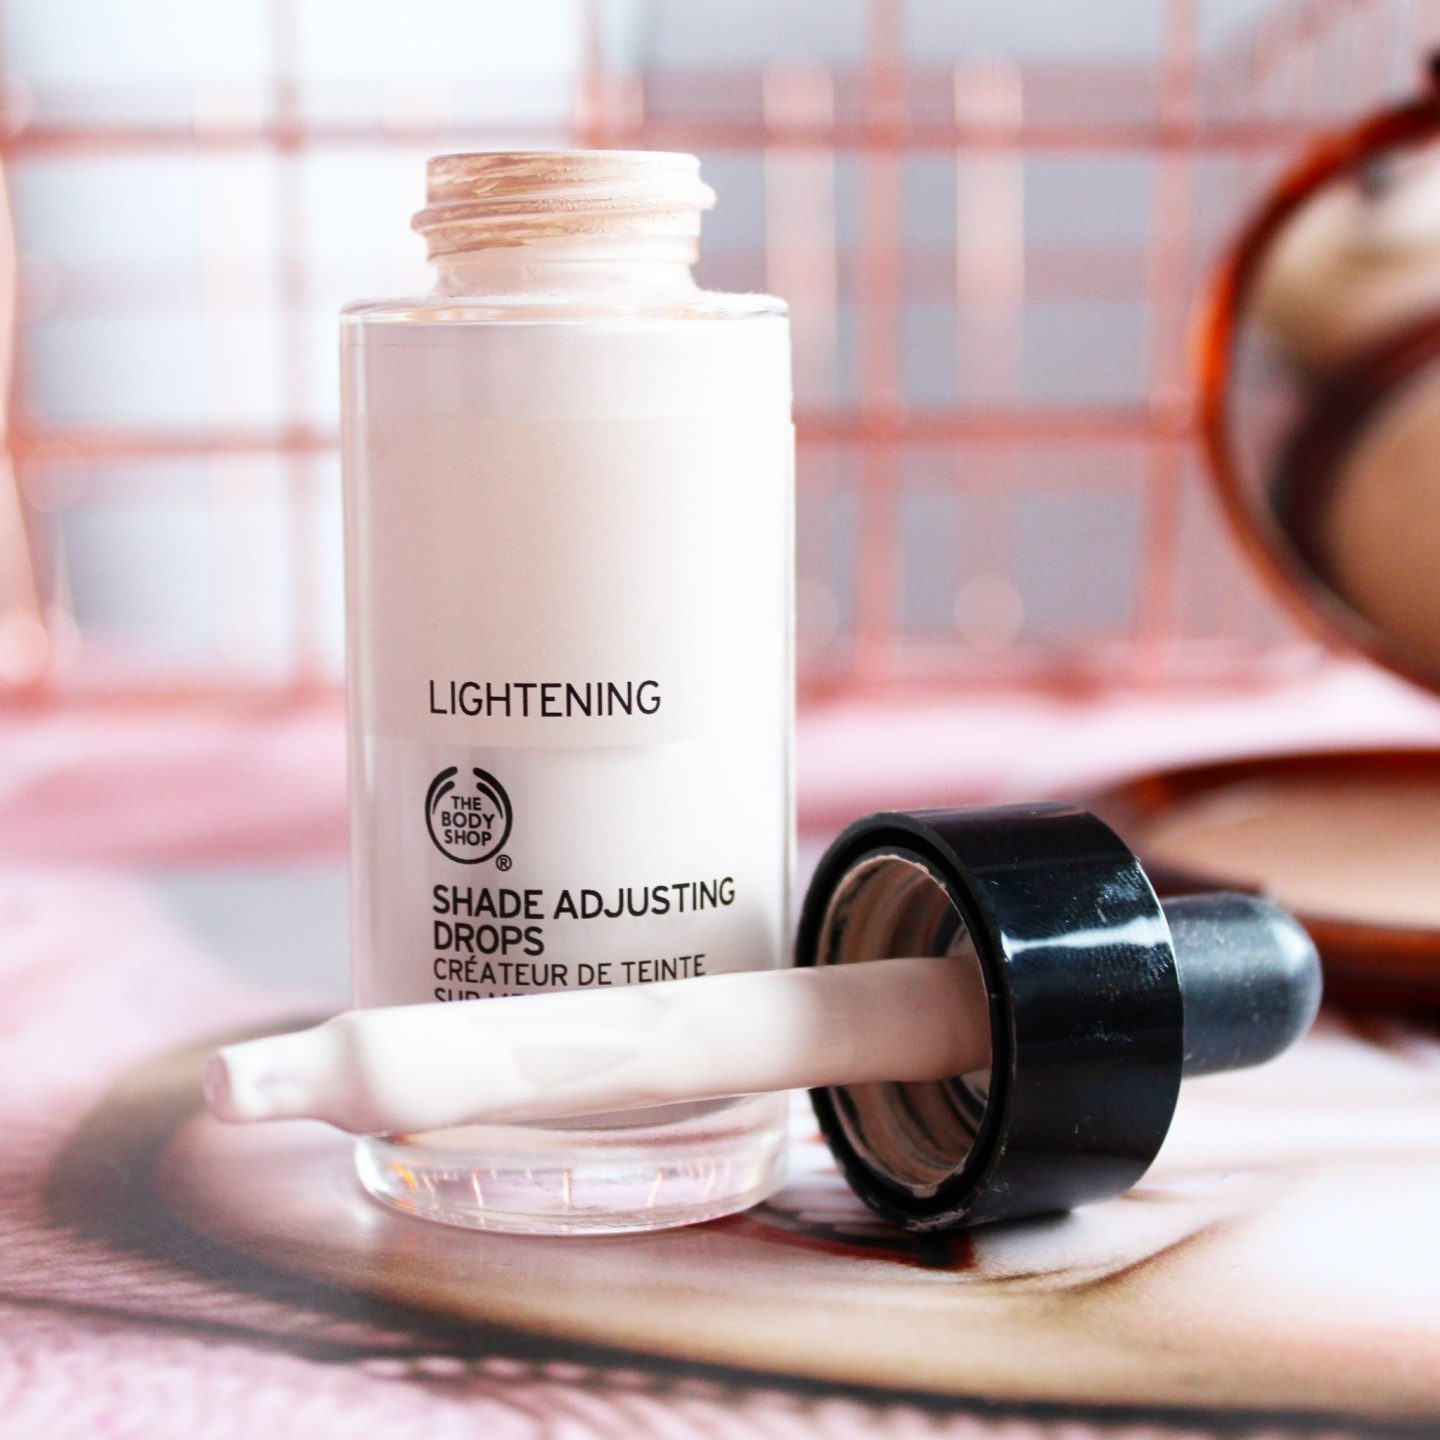 The Body Shop | Lightening Shade Adjusting Drops